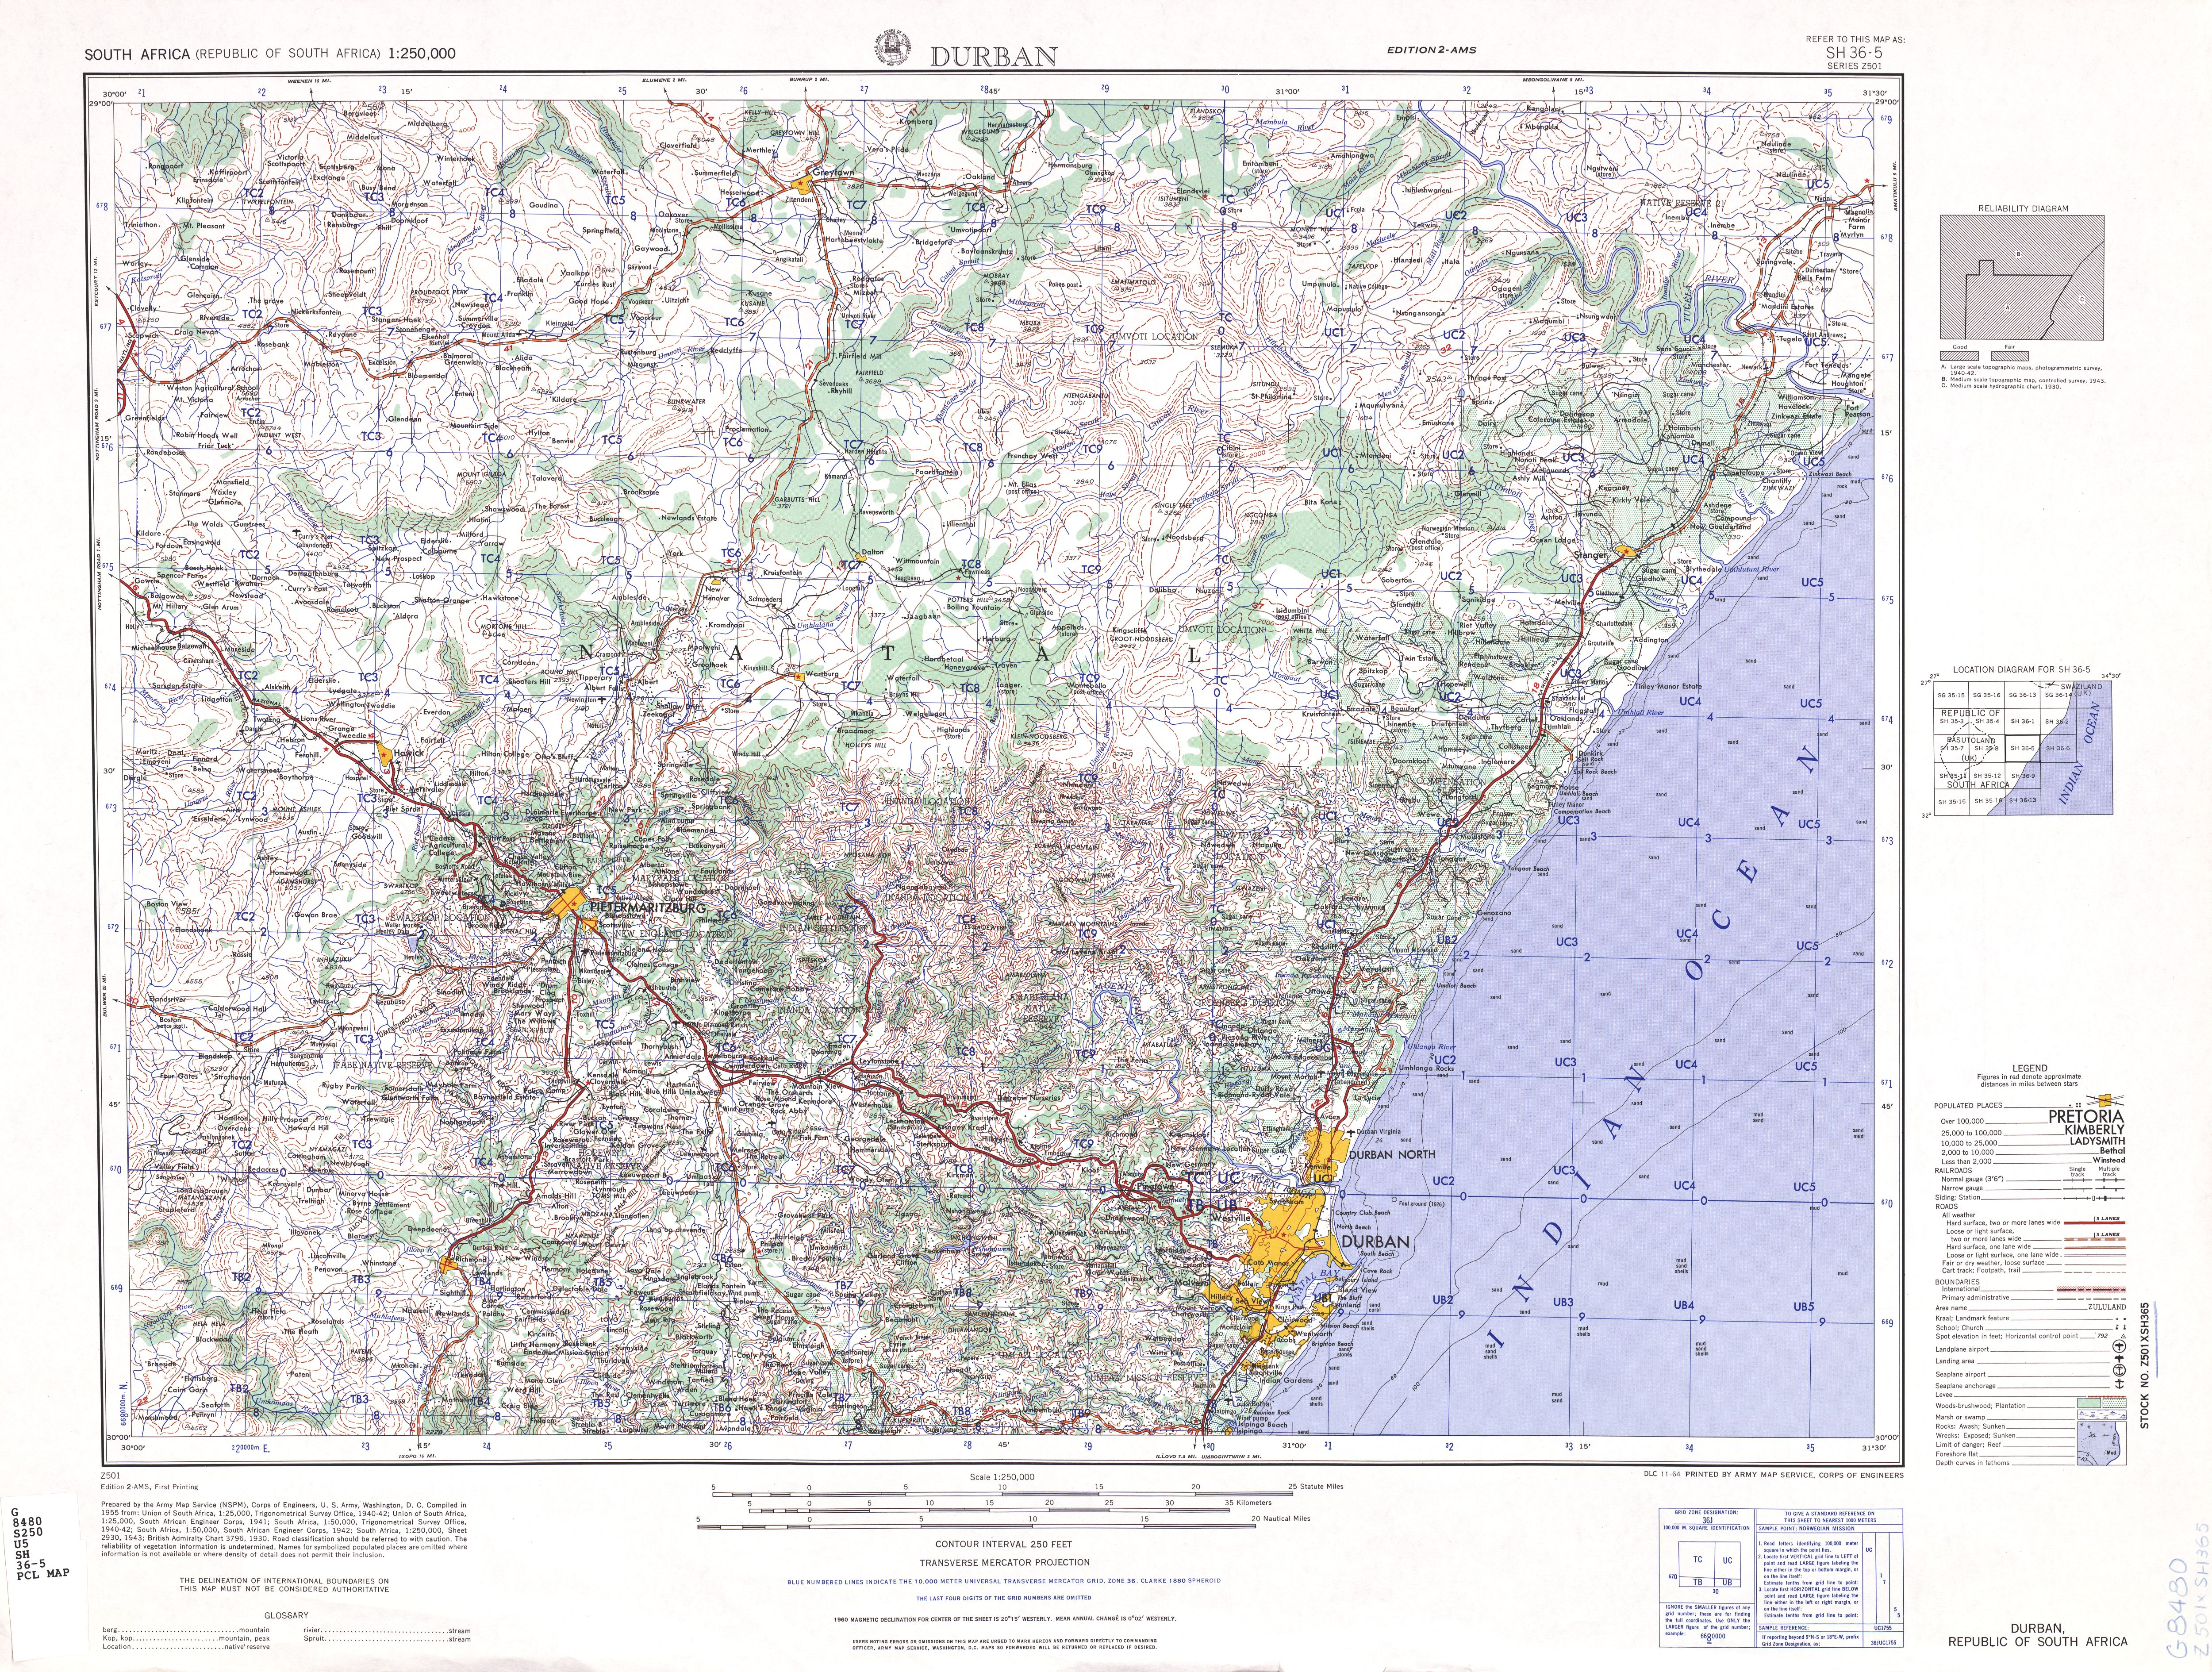 South Africa AMS Topographic Maps   Perry Castañeda Map Collection